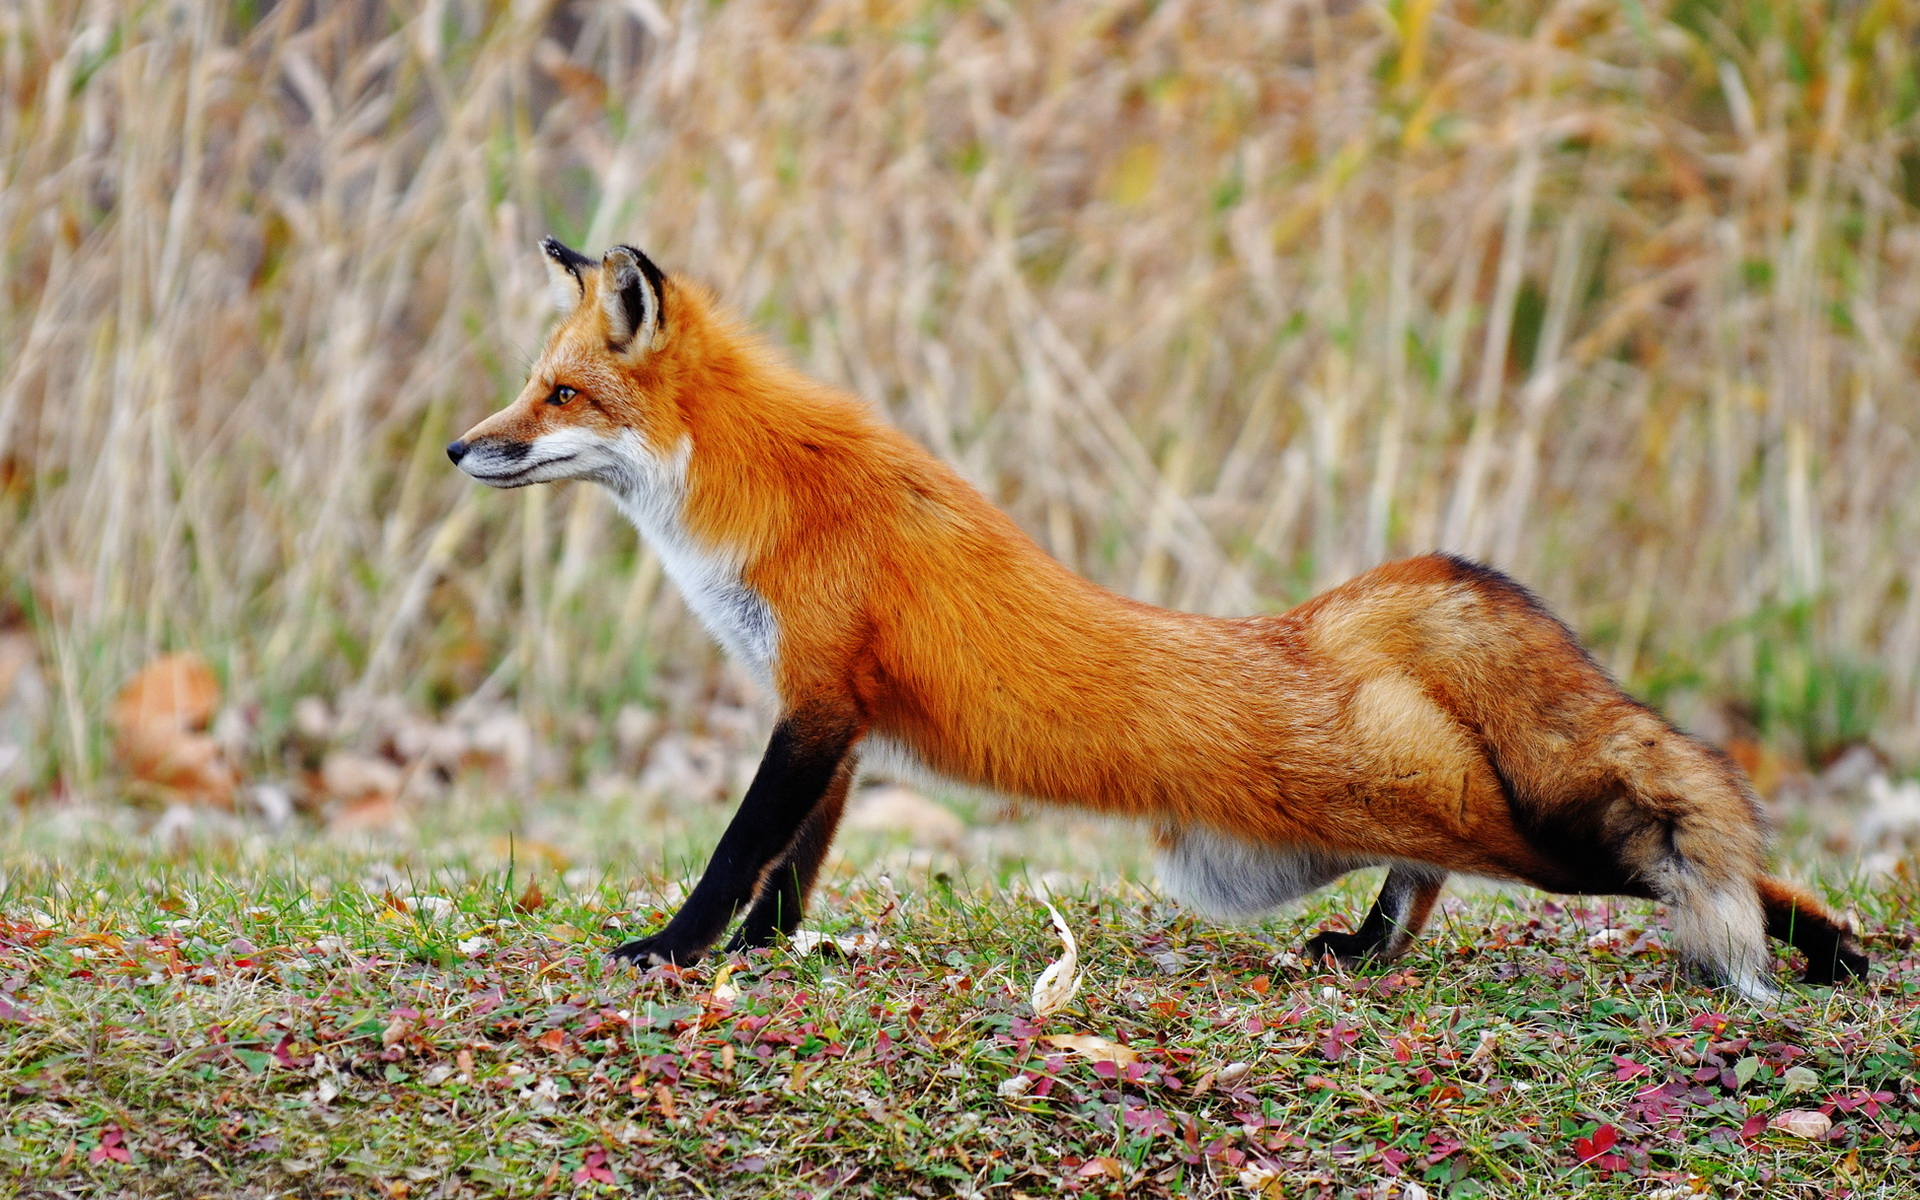 Fox hunting wallpapers and images - wallpapers, pictures, photos